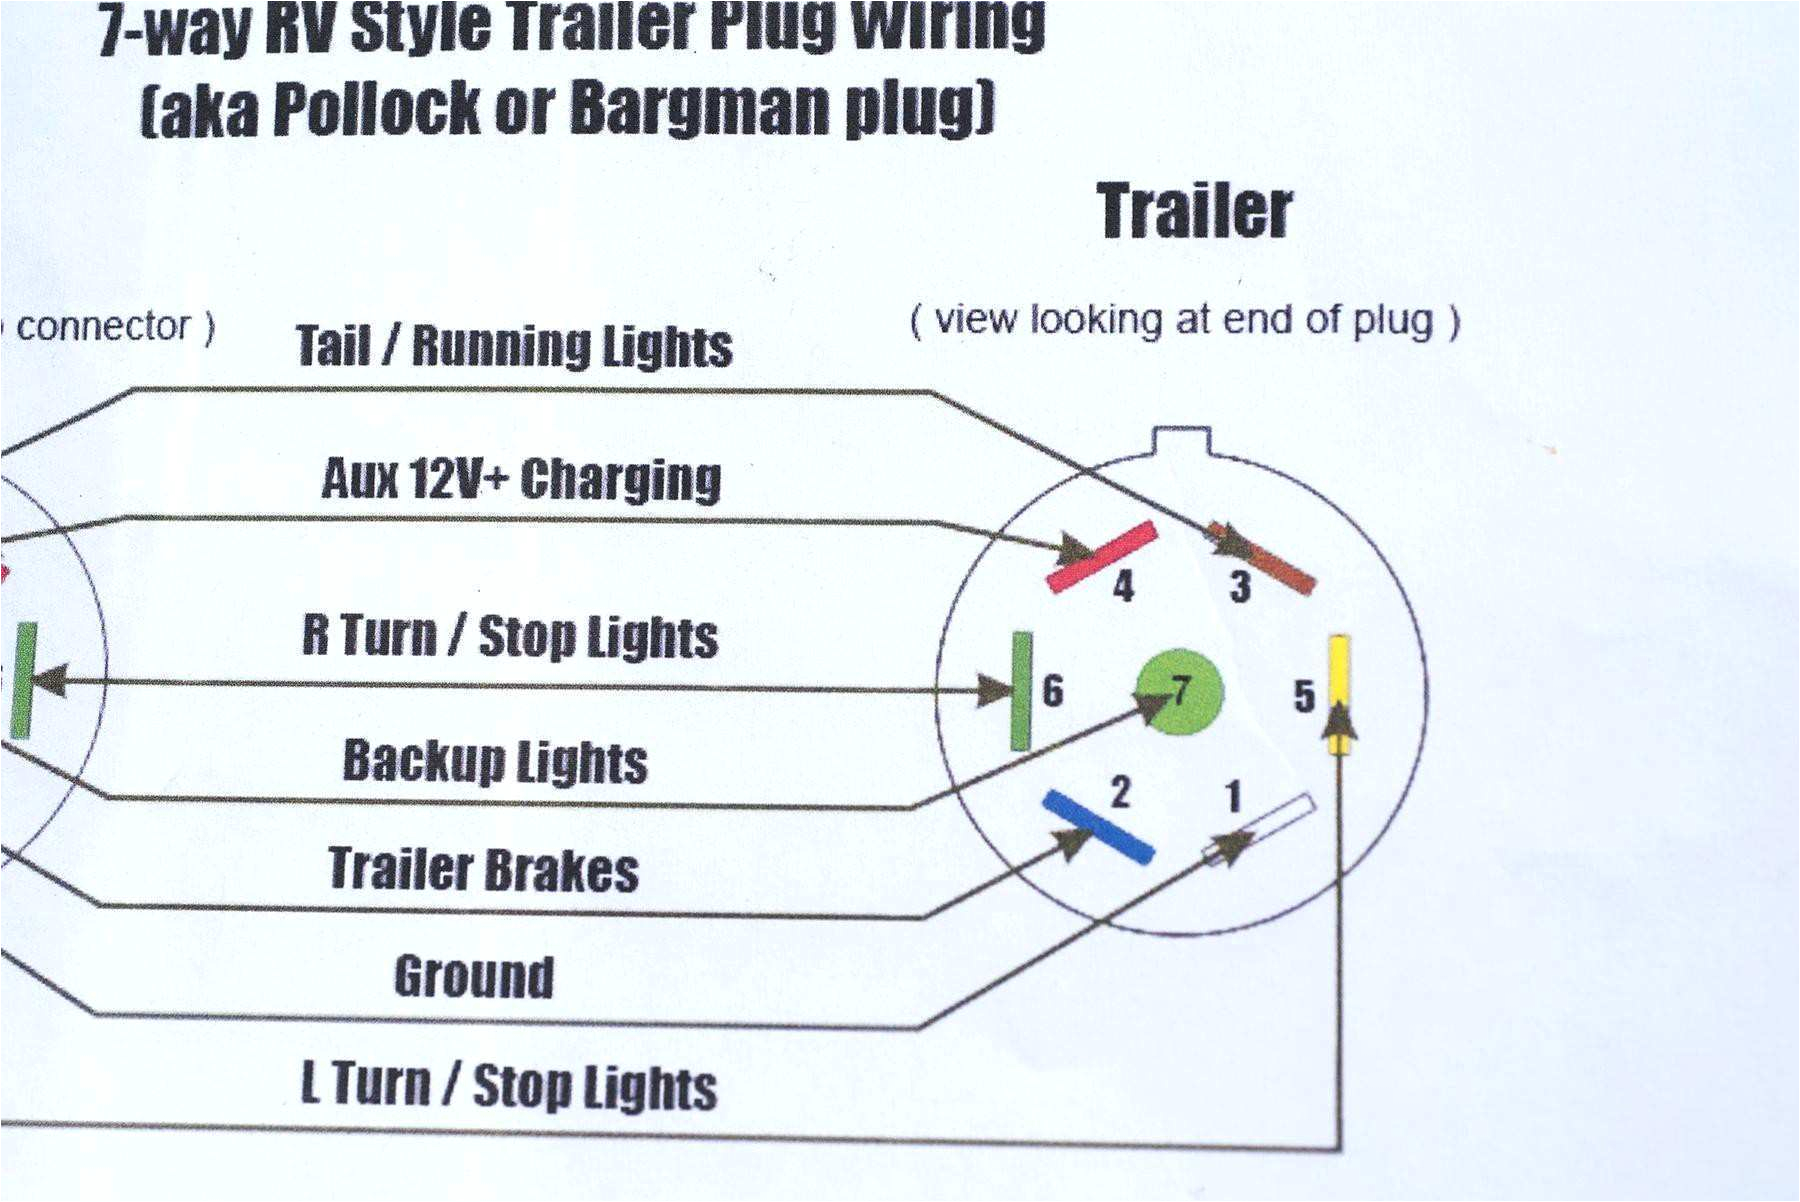 chevy truck trailer wiring connector wiring diagram repair guides 7 pin trailer wiring chevy truck 7 pin wiring for chevy truck